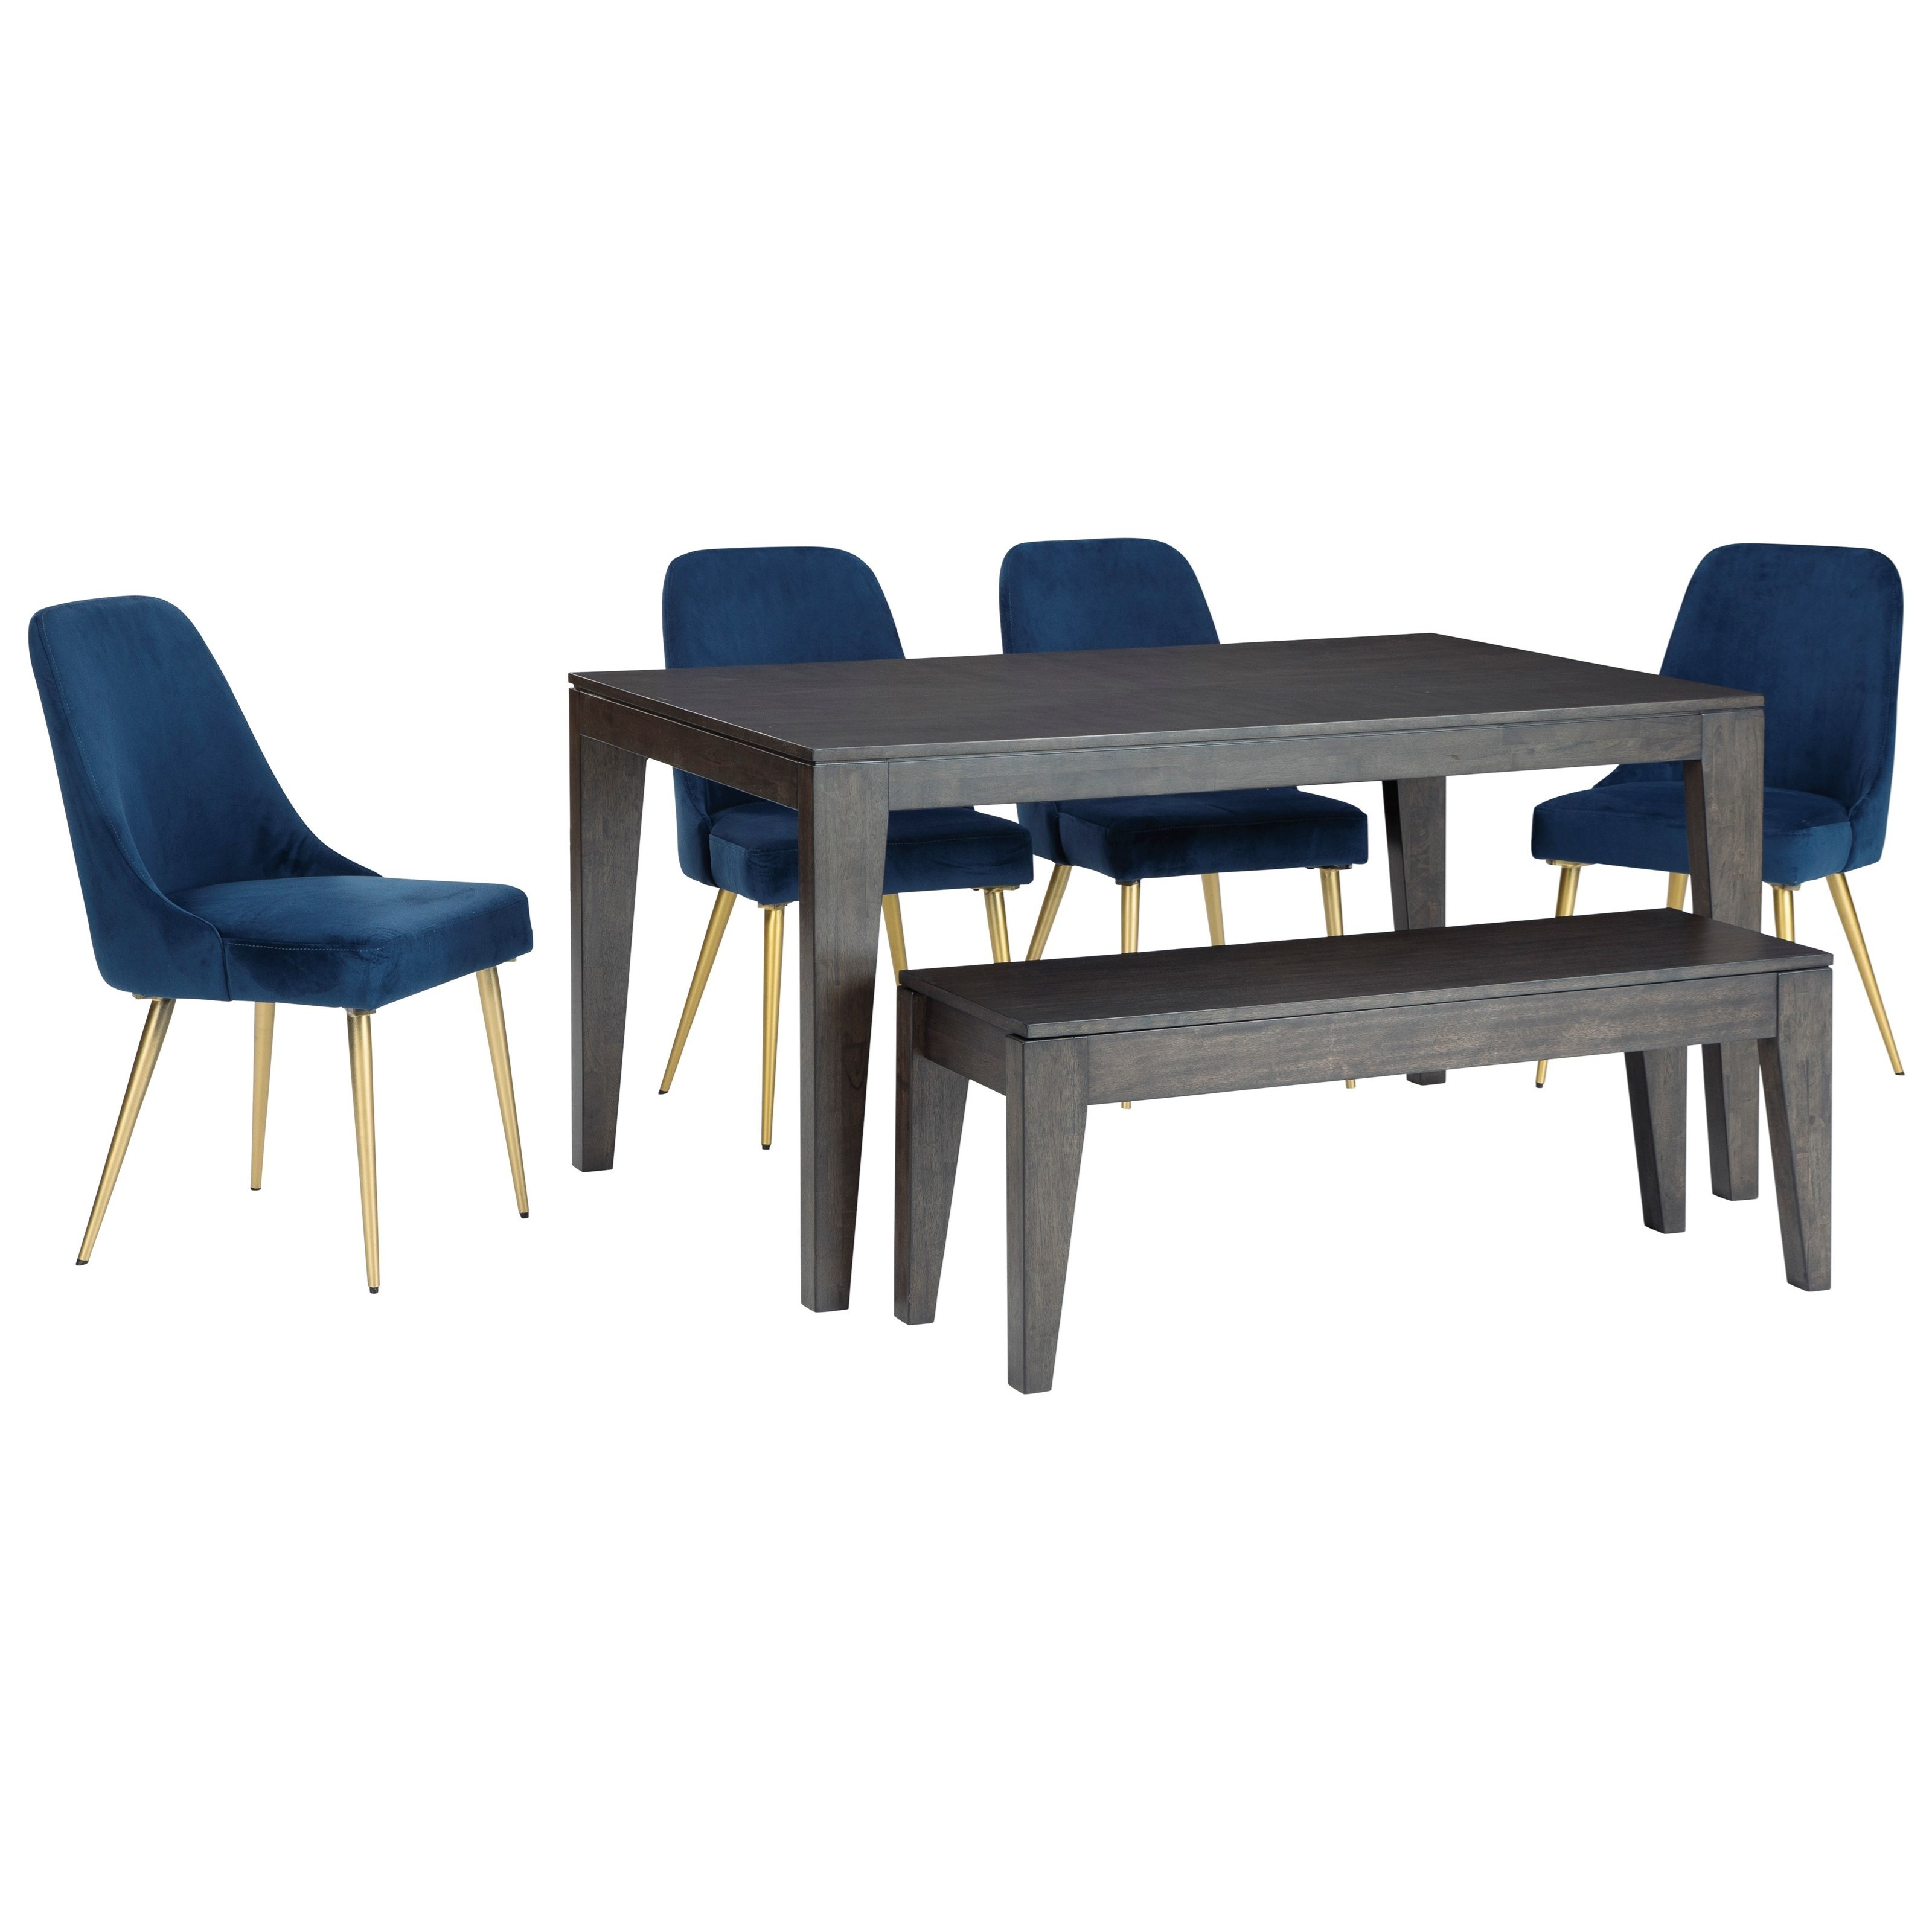 Trishcott 6-Piece Table and Chair Set with Bench at Walker's Furniture